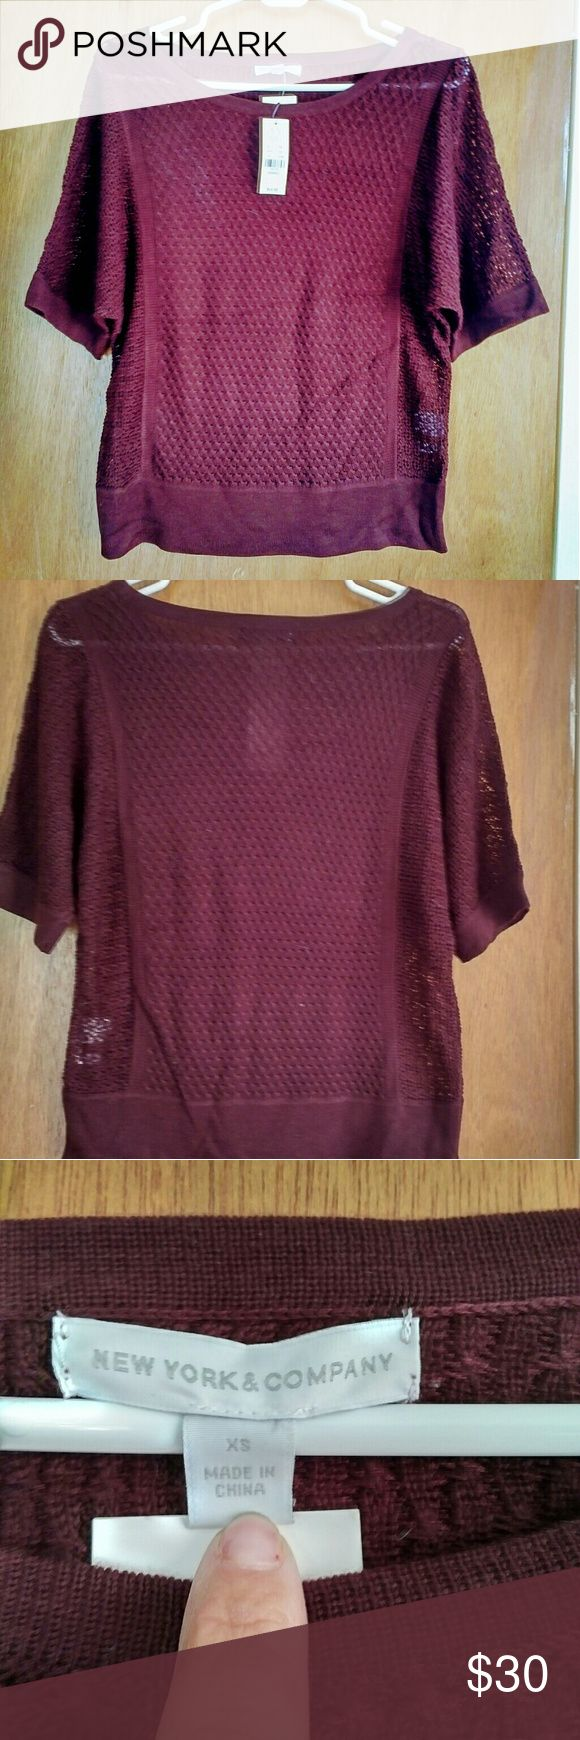 NWT NY&CO MAROON CROCHETED SHORT SLEEVE TOP NWT NY&CO, DEEP MAROON, CROCHETED, SHORT SLEEVE TOP, SIZE XS (could EASILY fit size small or a small medium!). BRAND NEW, NEVER WORN! Top is crocheted, but not sheer enough that a camisole is necessary. Would be up to personal preference. Shirt is NOT see thru. PERFECT CONDITION!   Open to REASONABLE OFFERS ONLY!!! No trades. New York & Company Tops